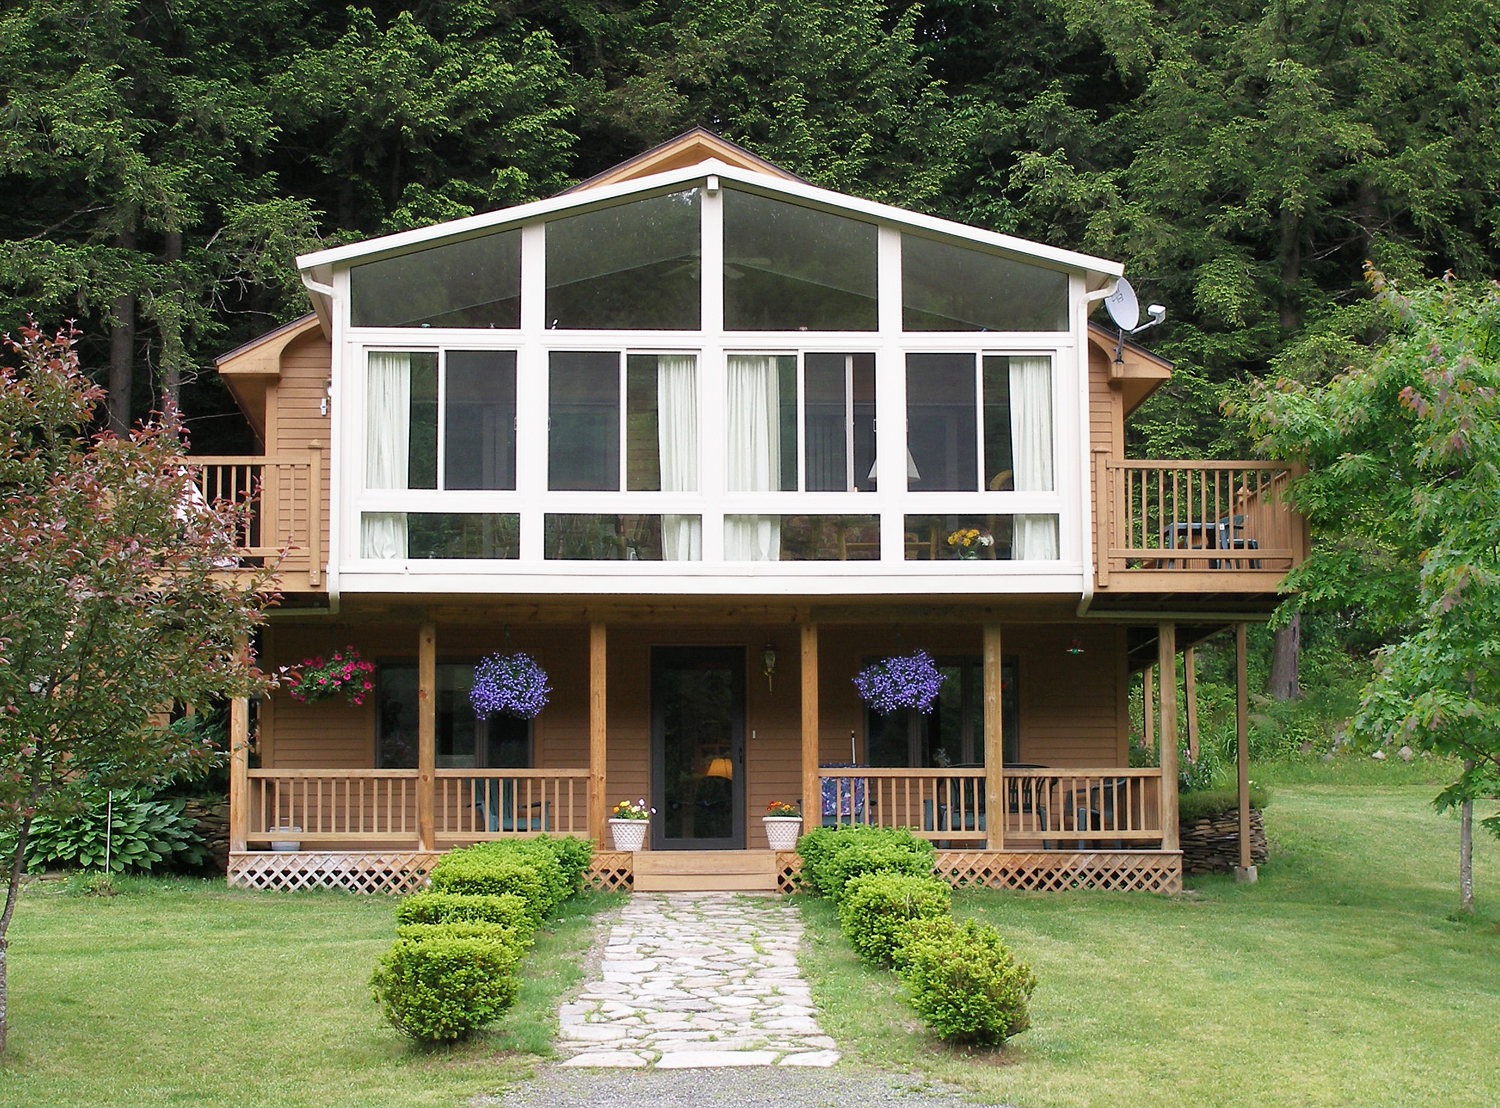 Gable Style Sunroom by Betterliving Patio & Sunrooms of ...